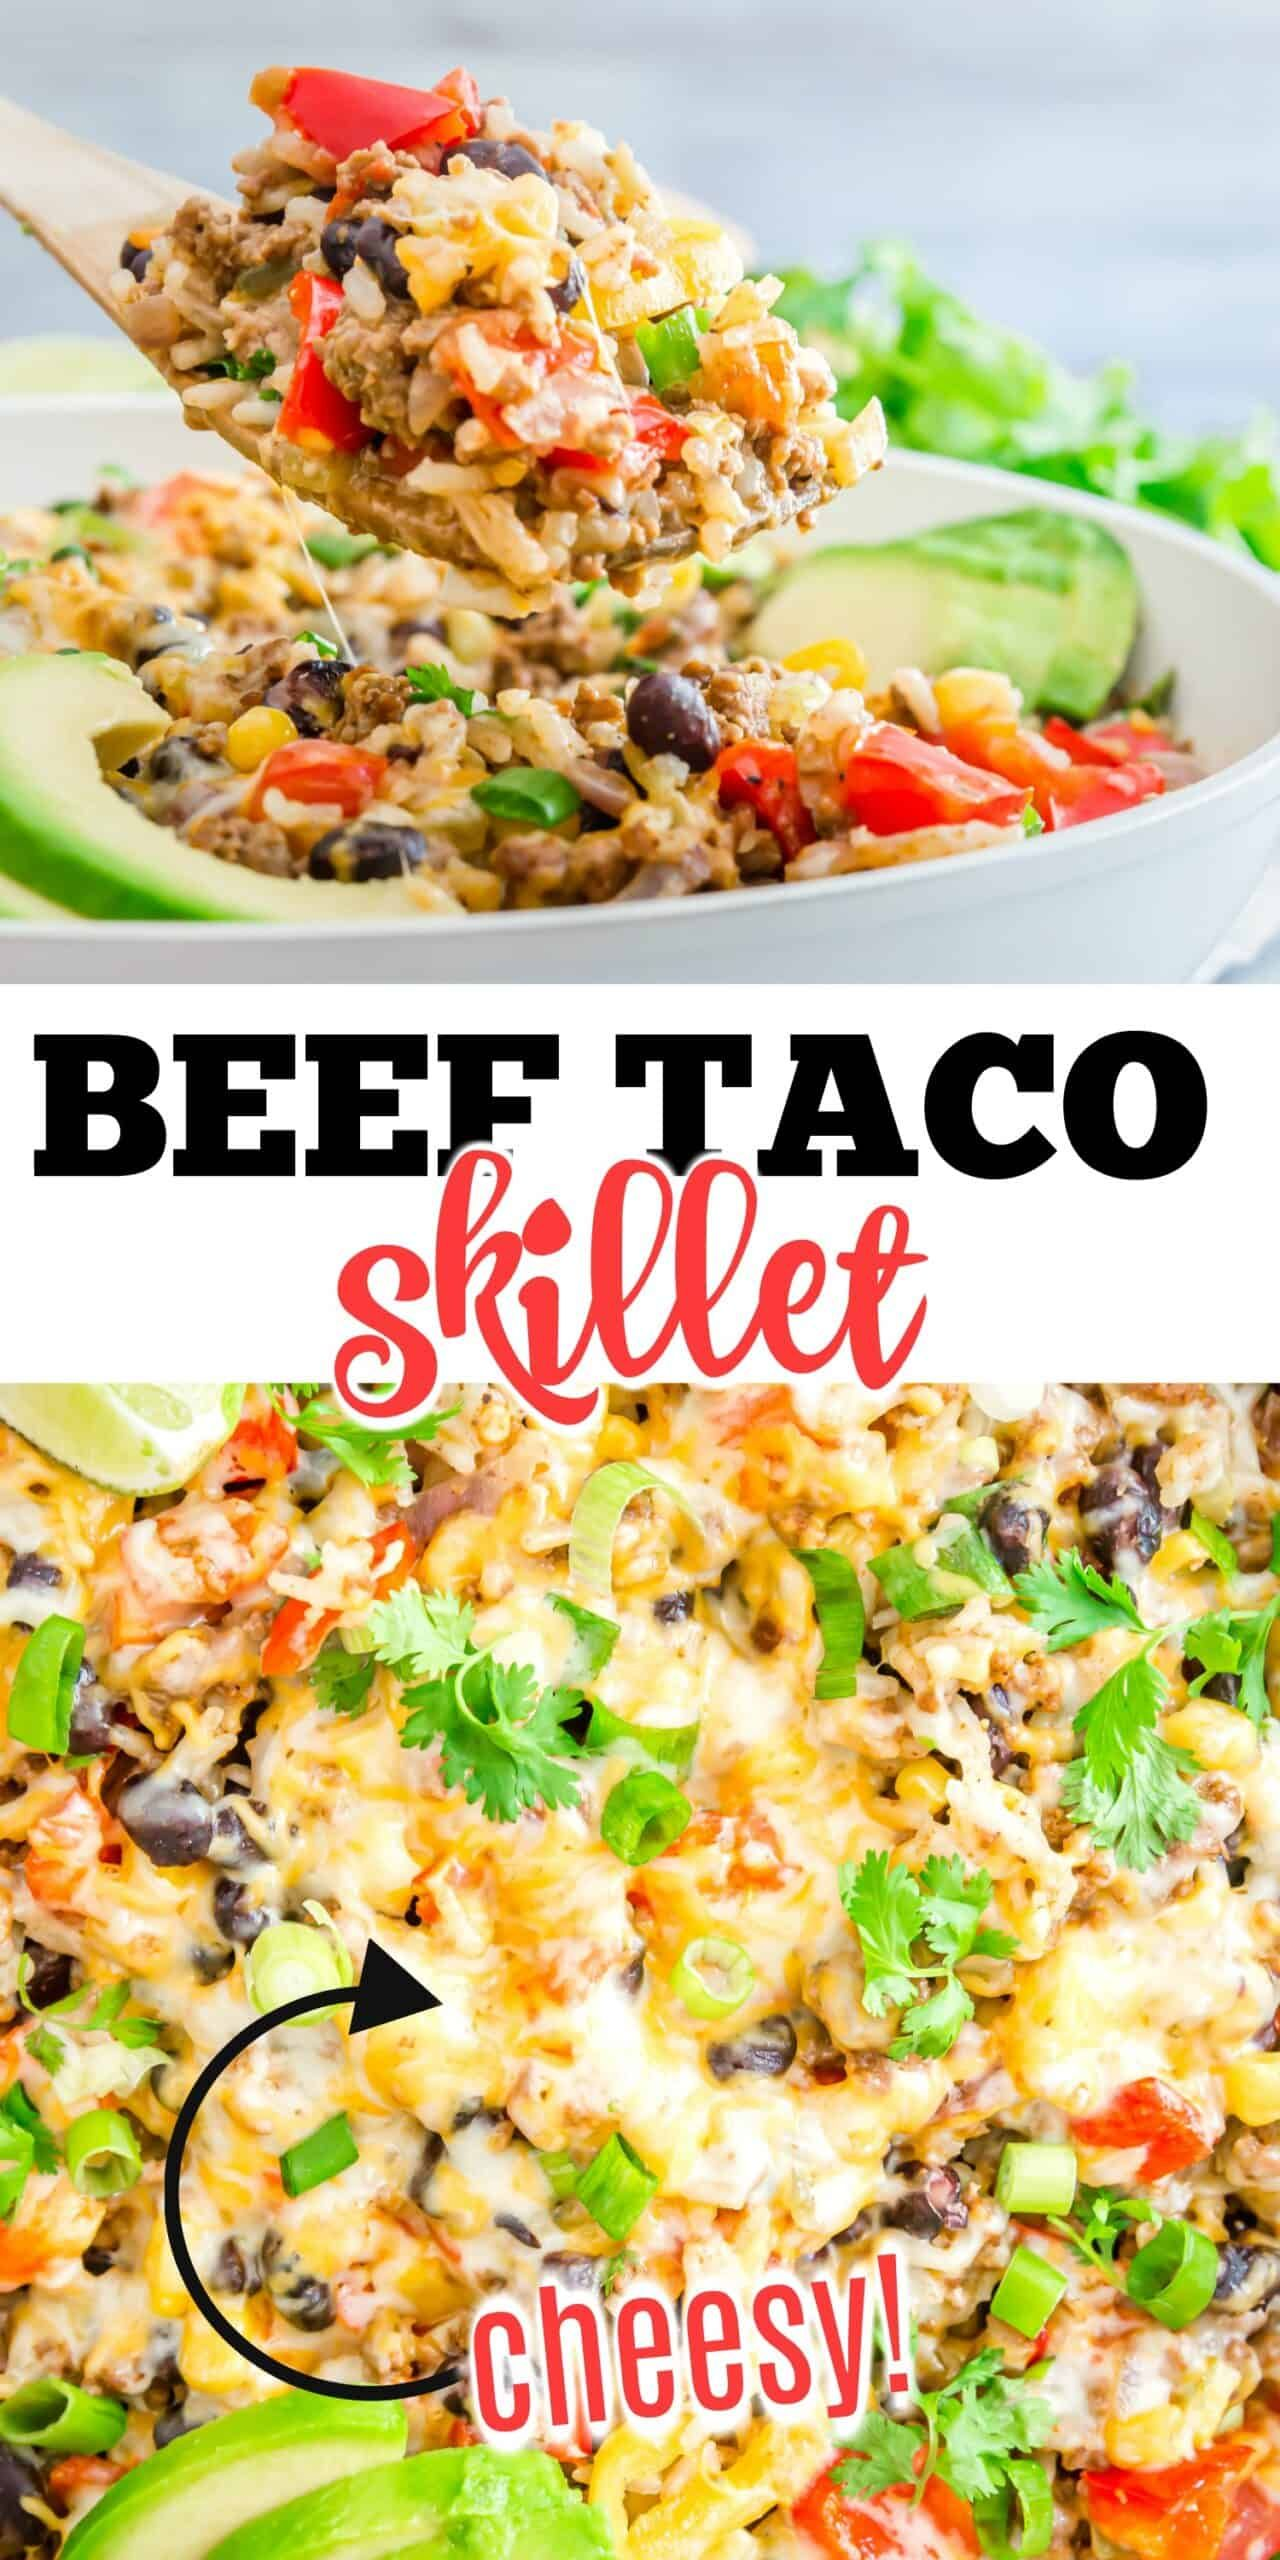 Taco Night Just Got Even Easier This One Pan Beef Taco Skillet Is Full Of Flavorful Ground Beef Mexican Cheese An In 2020 Flavorful Beef Tacos Beef Best Beef Recipes